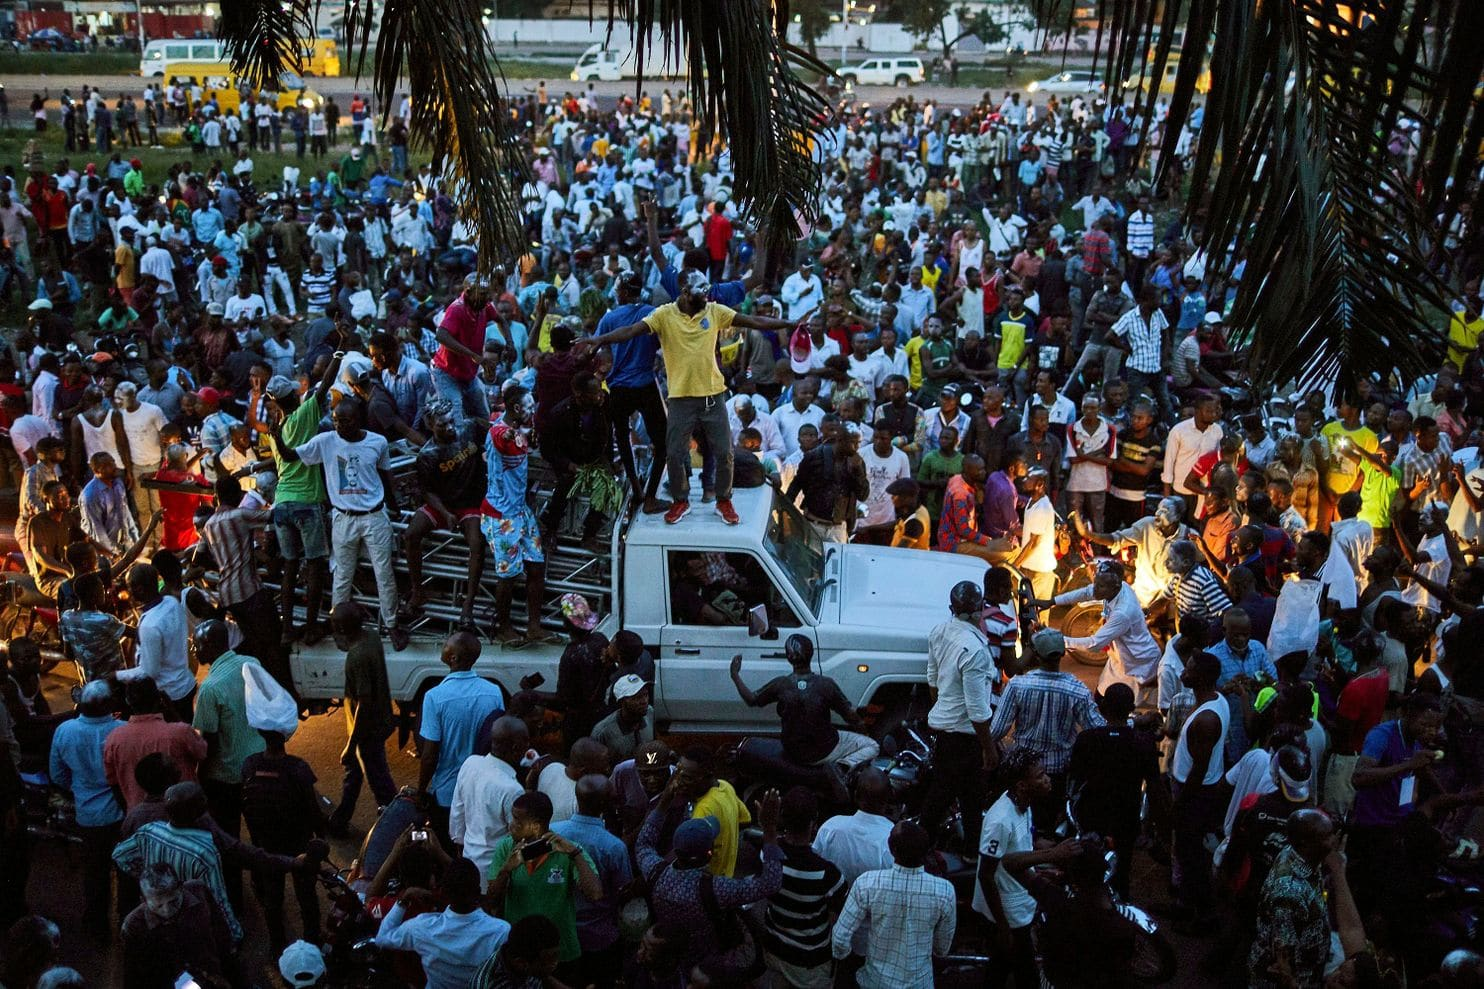 Supporters of Felix Tshisekedi, the leader of the Union for Democracy and Social Progress party, rally outside his headquarters in Kinshasa as they wait for the electoral commission to announce the results of the Dec. 30 election. (Hugh Kinsella Cunningham/EPA-EFE/Shutterstock)